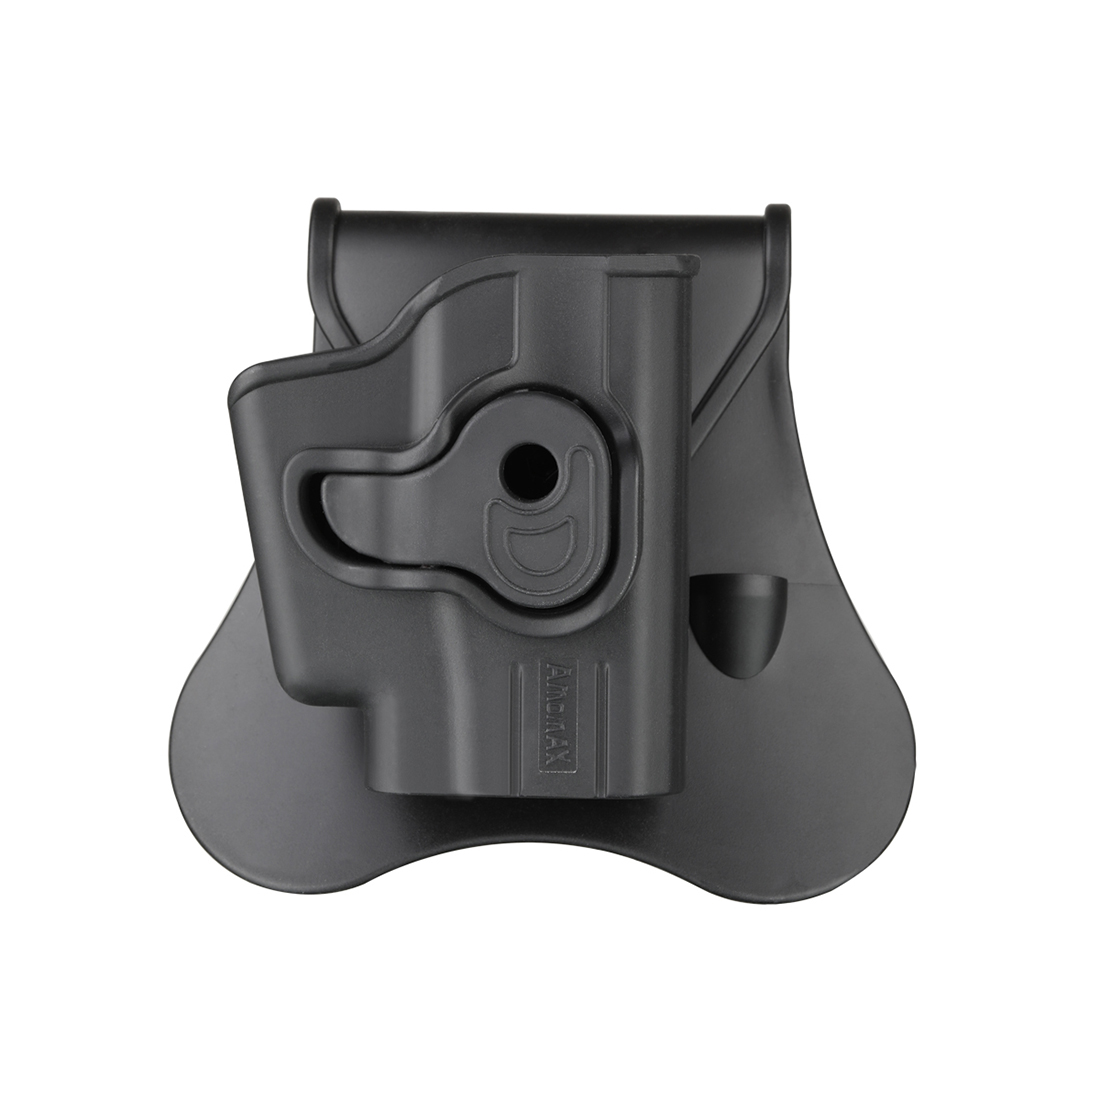 Amomax Adjustable Tactical Holster for Ruger LCP/Taurus TCP/KEL-TEC P-3AT - Right-handed Black (Standard only with waist plate)